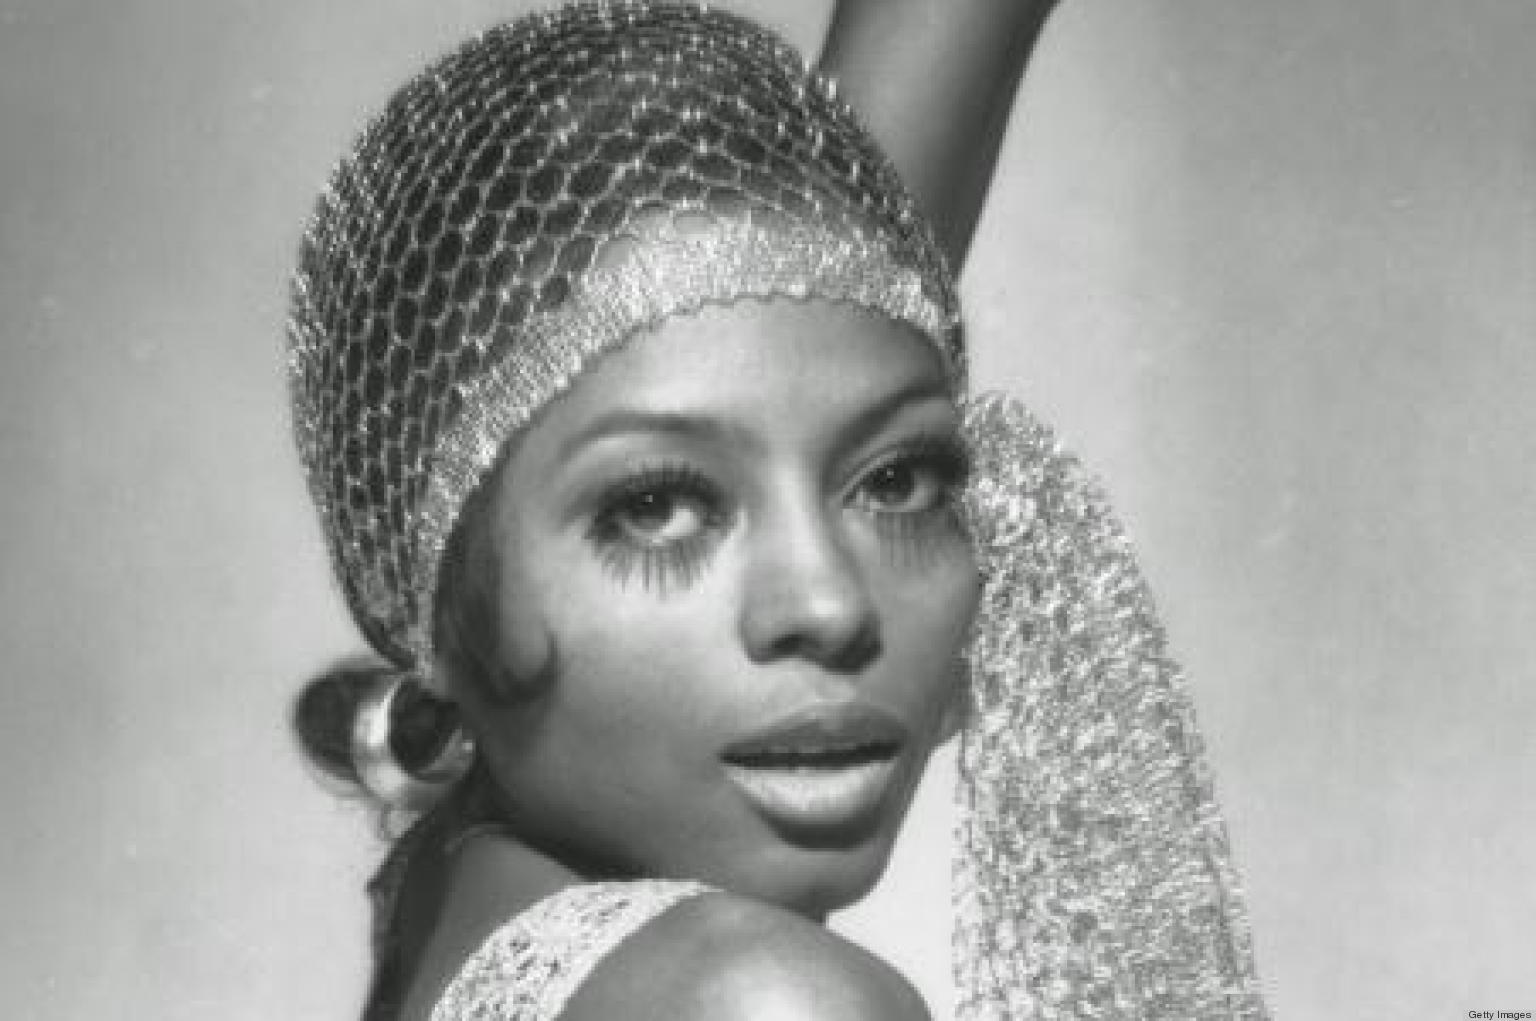 diana ross is the ultimate diva in a scarf and hoops photo